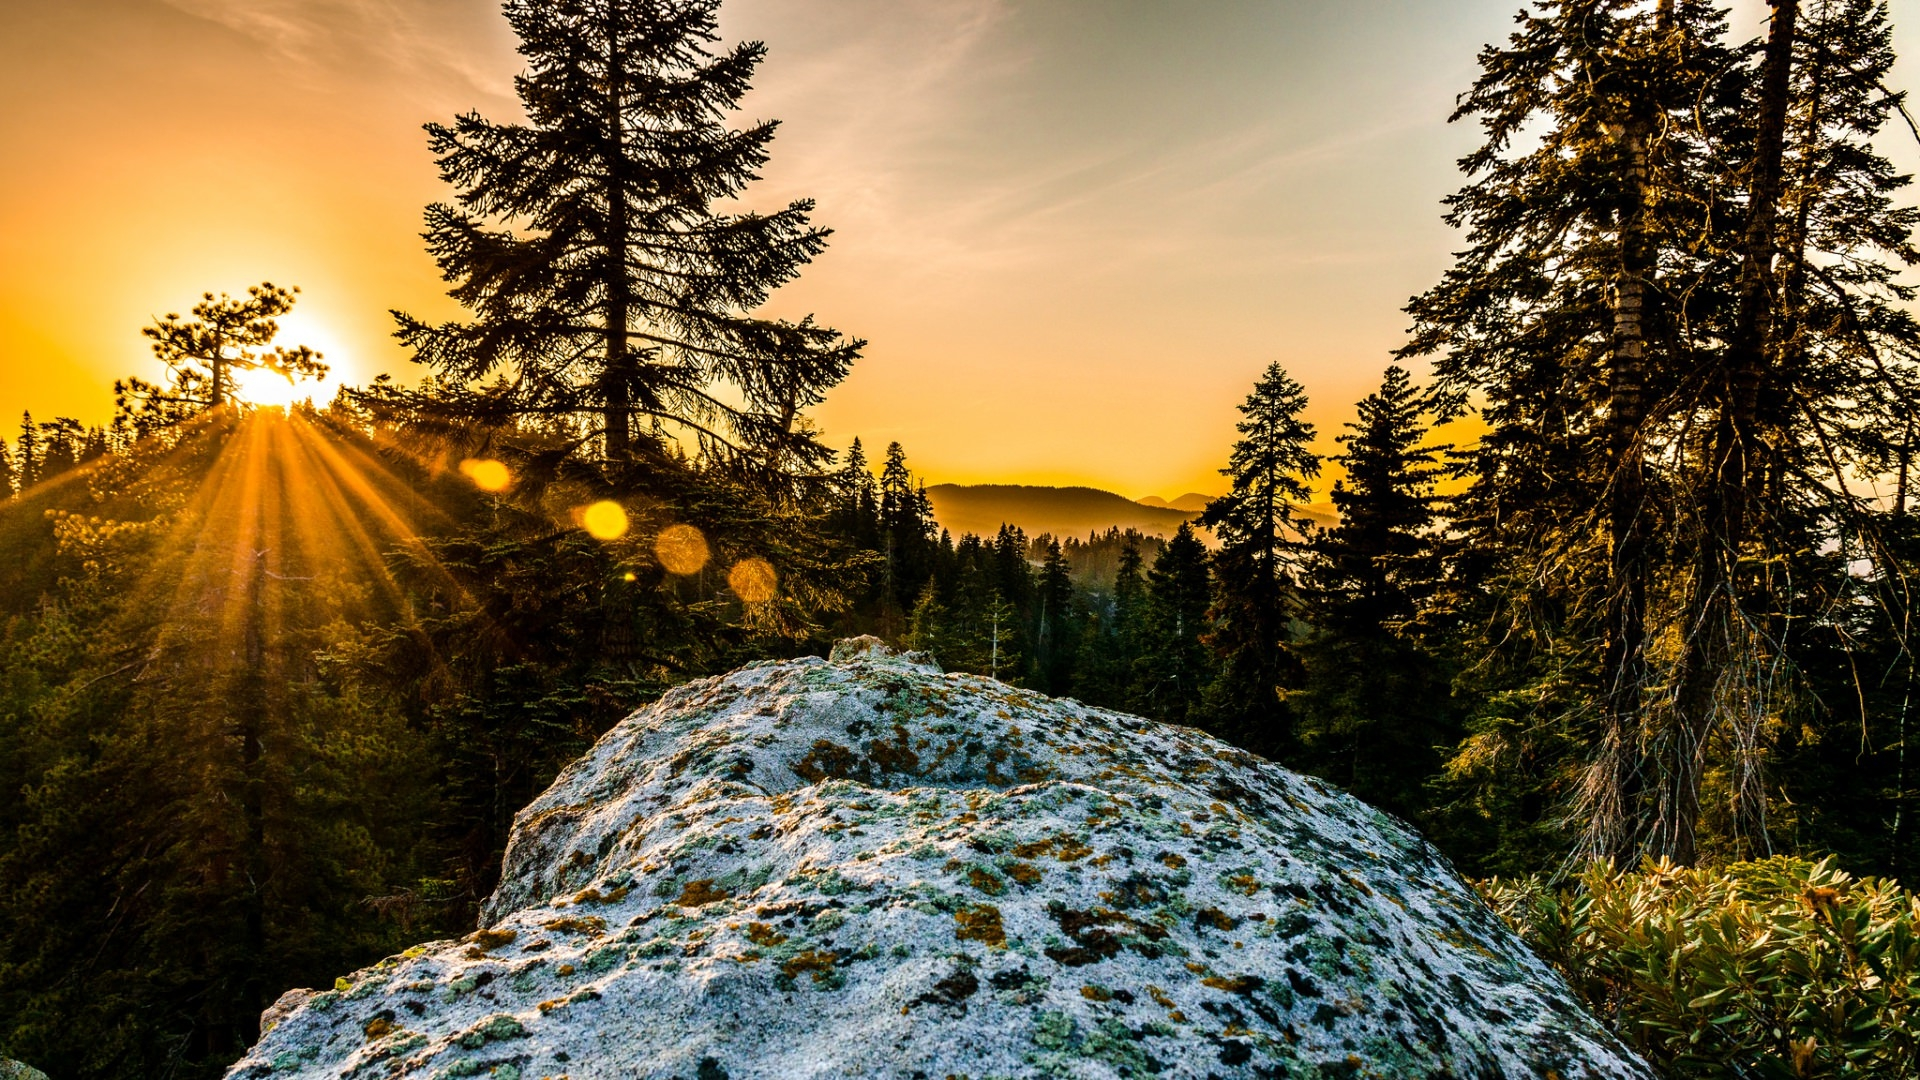 Hill Trees Sunshine Wallpaper